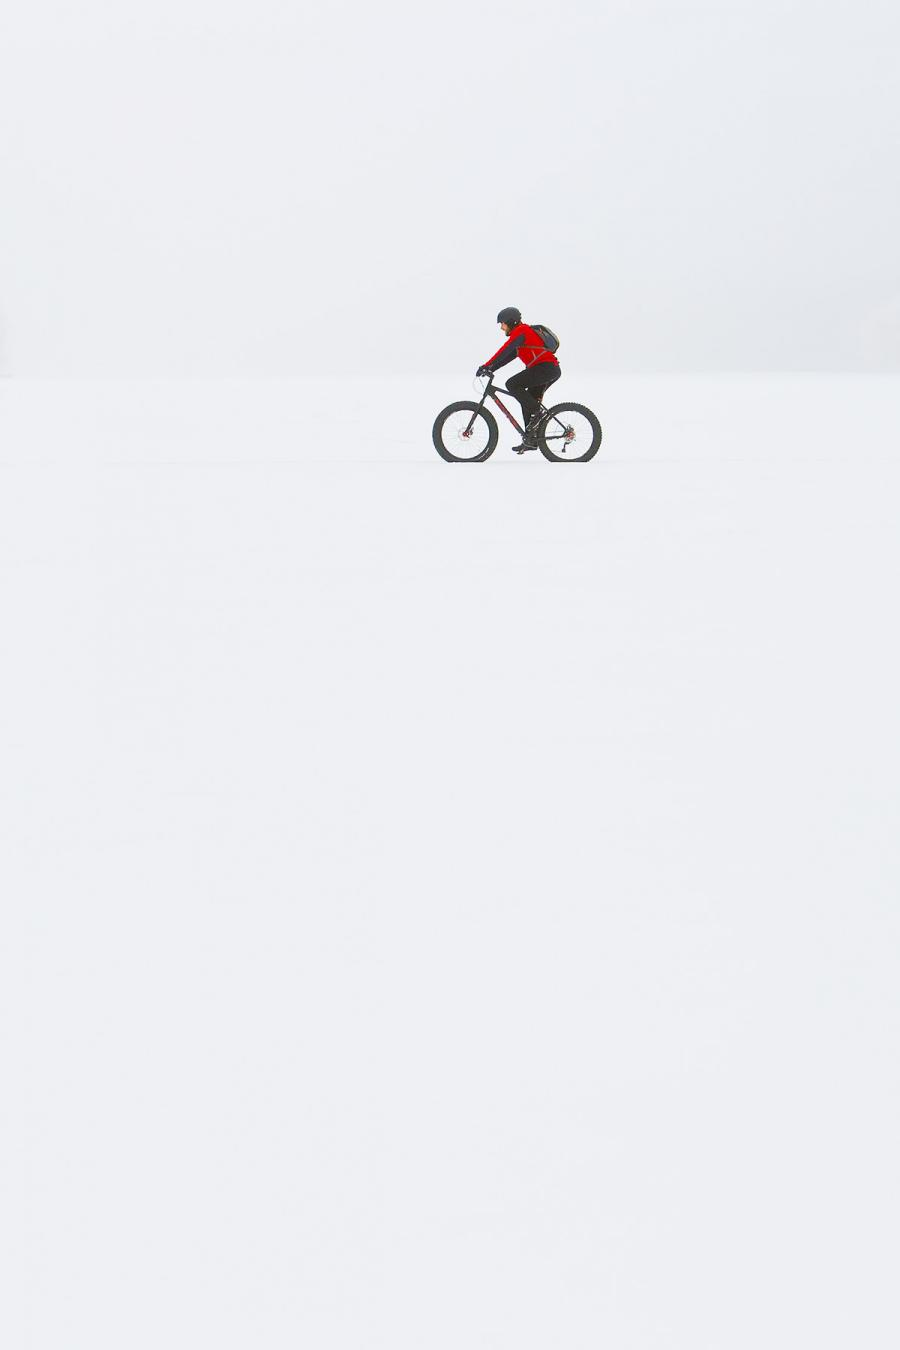 A biker in the snow near Cuyuna, Minnesota